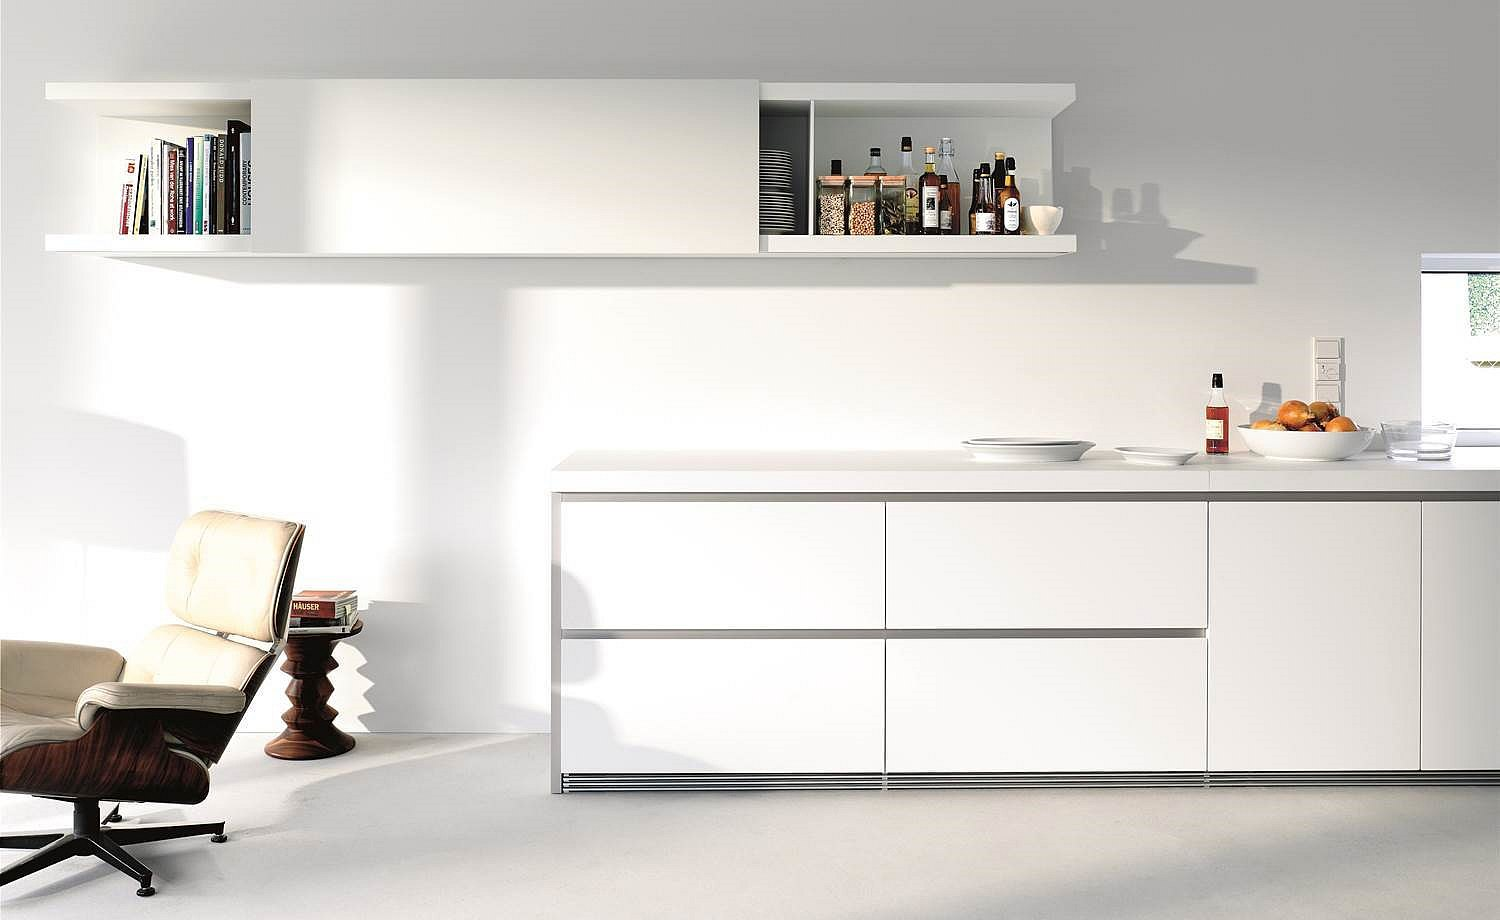 2008: Introduction of b1: Purism in white. Clear structures reduce the kitchen to the essentials